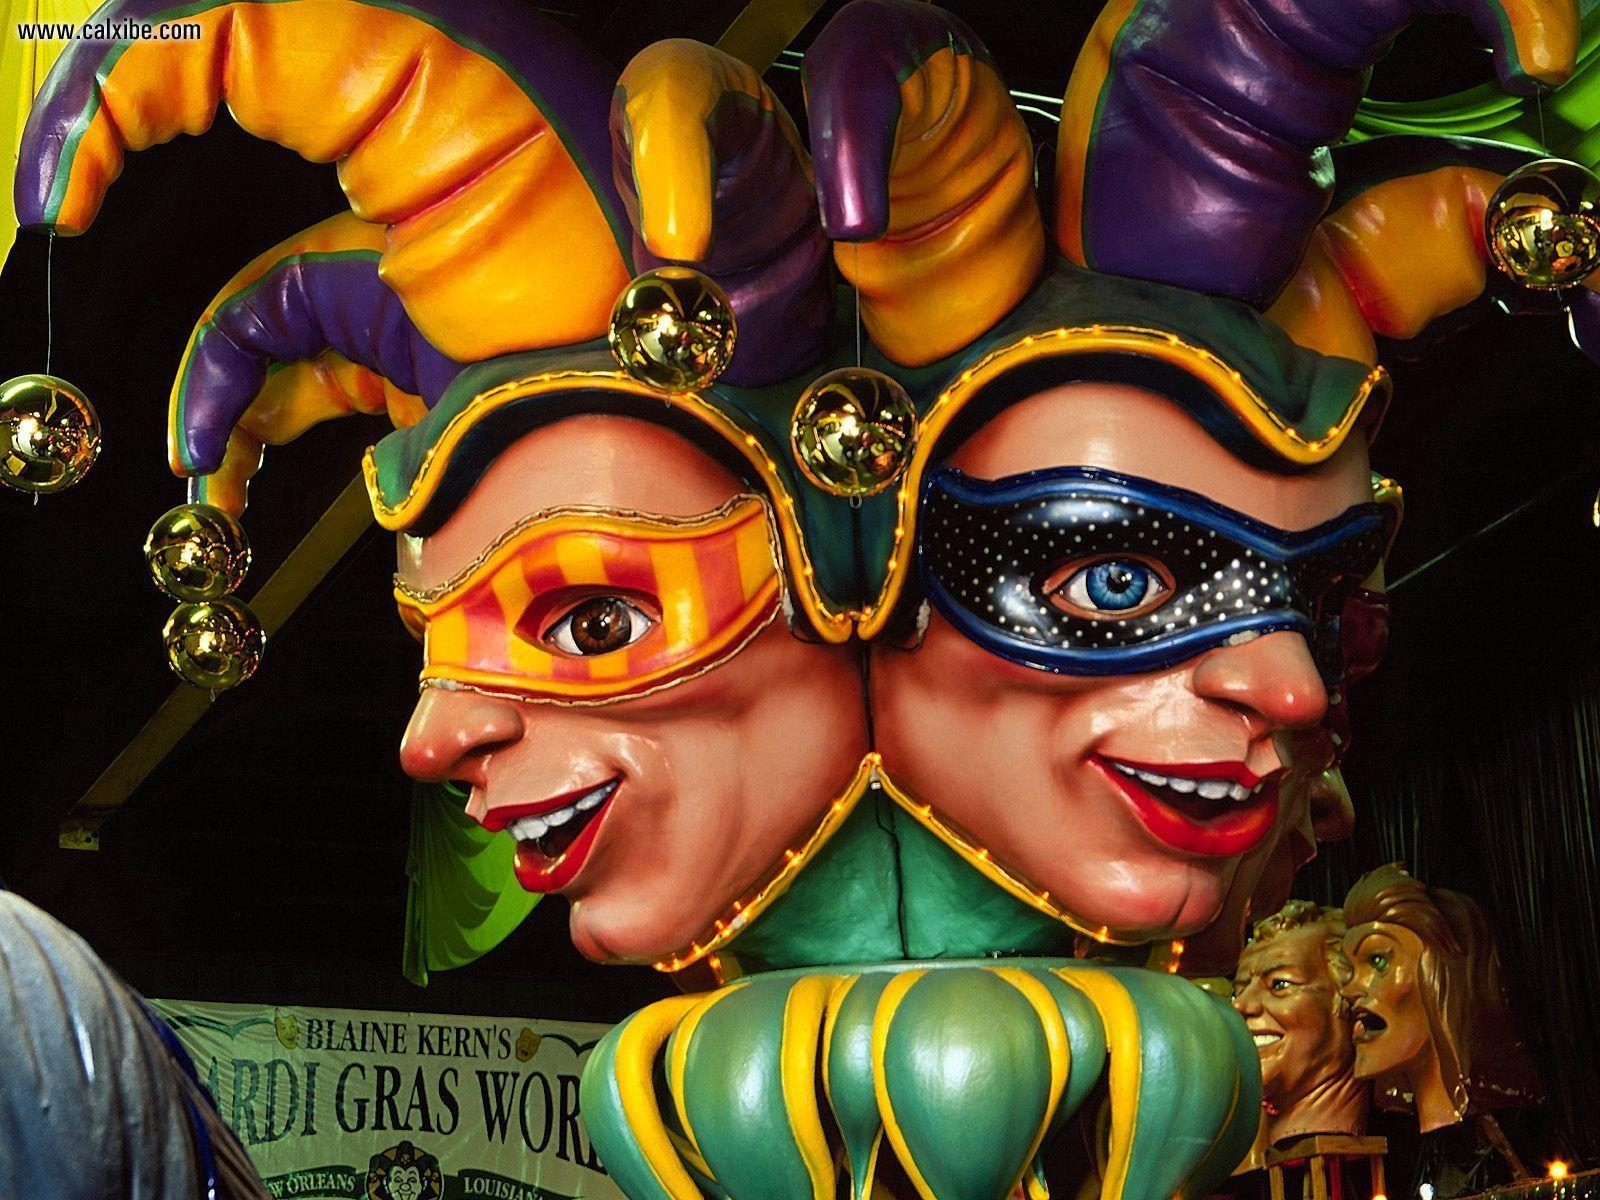 Known places: Blaine Kerns Mardi Gras World New Orleans Louisiana